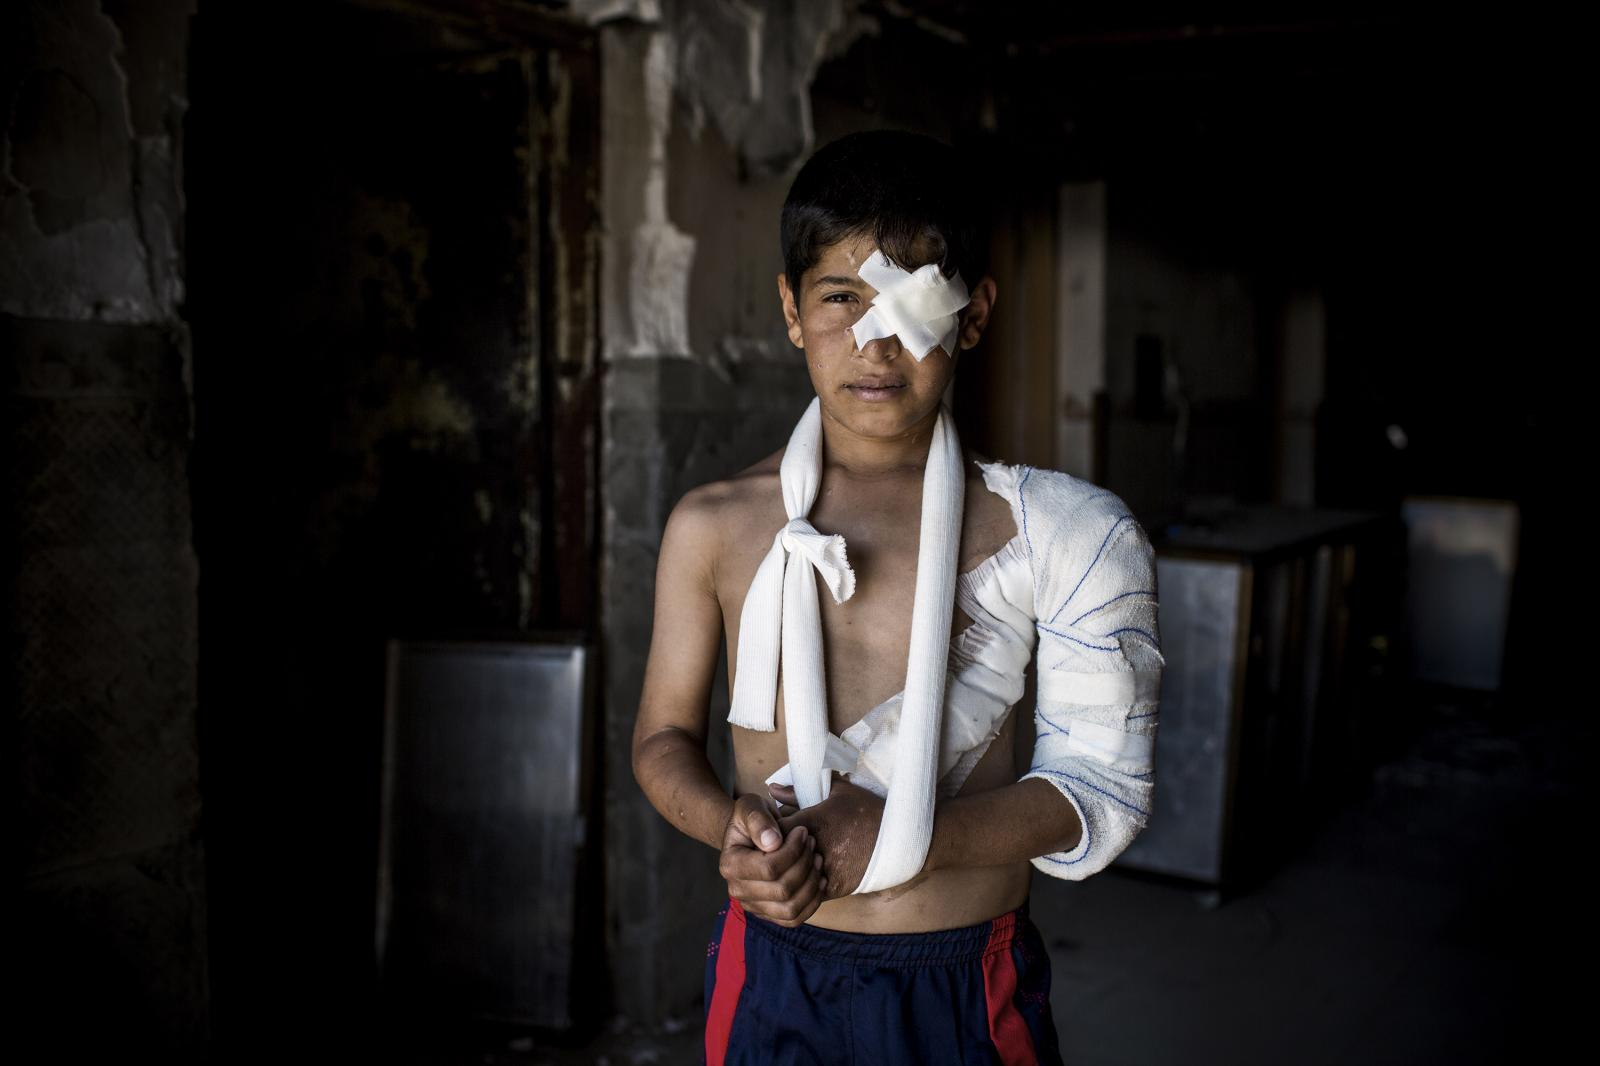 Portrait of Abdul Rahman, an Iraqi 11 year old, He was injured when he was on his way to a food distribution by an explosive charge. His family is still in Mosul. Hamdaniya, Iraq 2017. Diego Ibarra Sánchez for MSF